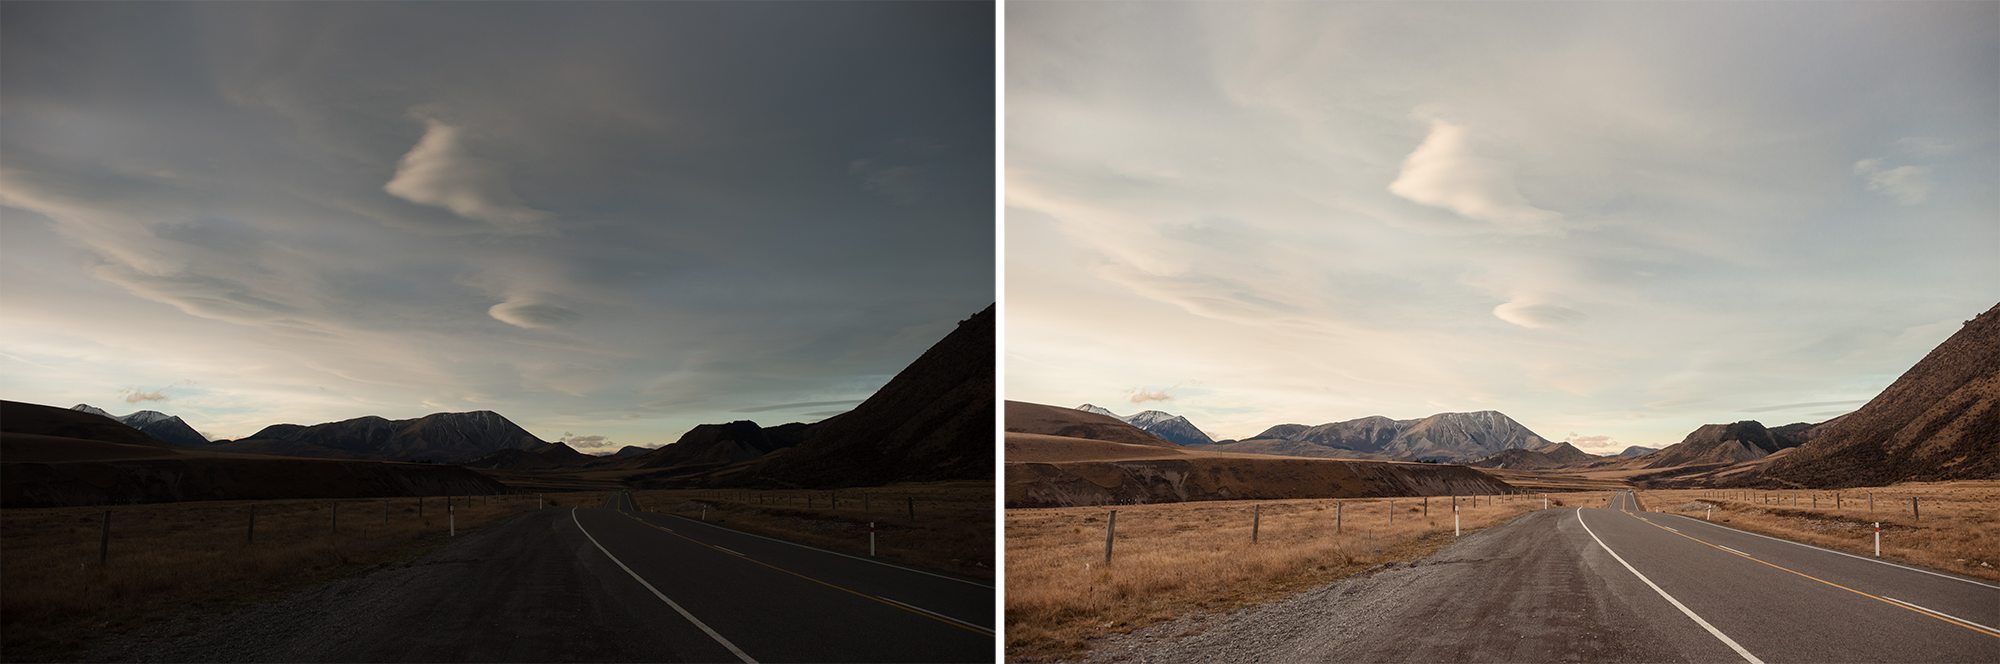 Before-and-after example of colour grading, all done in Lightroom.